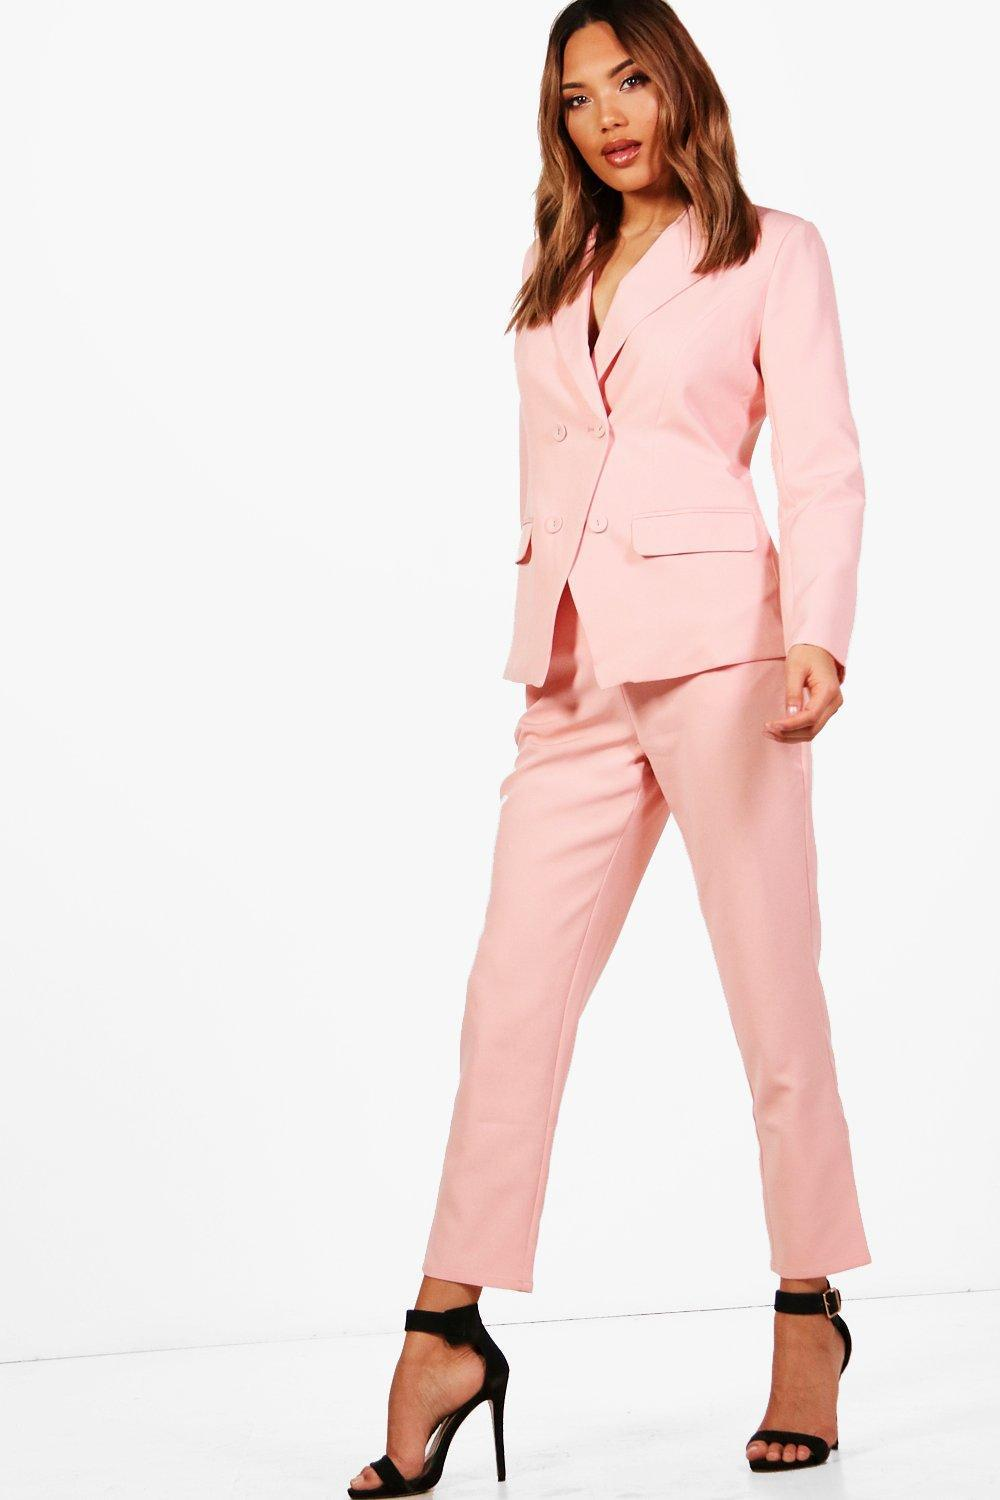 b28c216a1018 Lyst - Boohoo Straight Leg Woven Suit Trouser in Pink